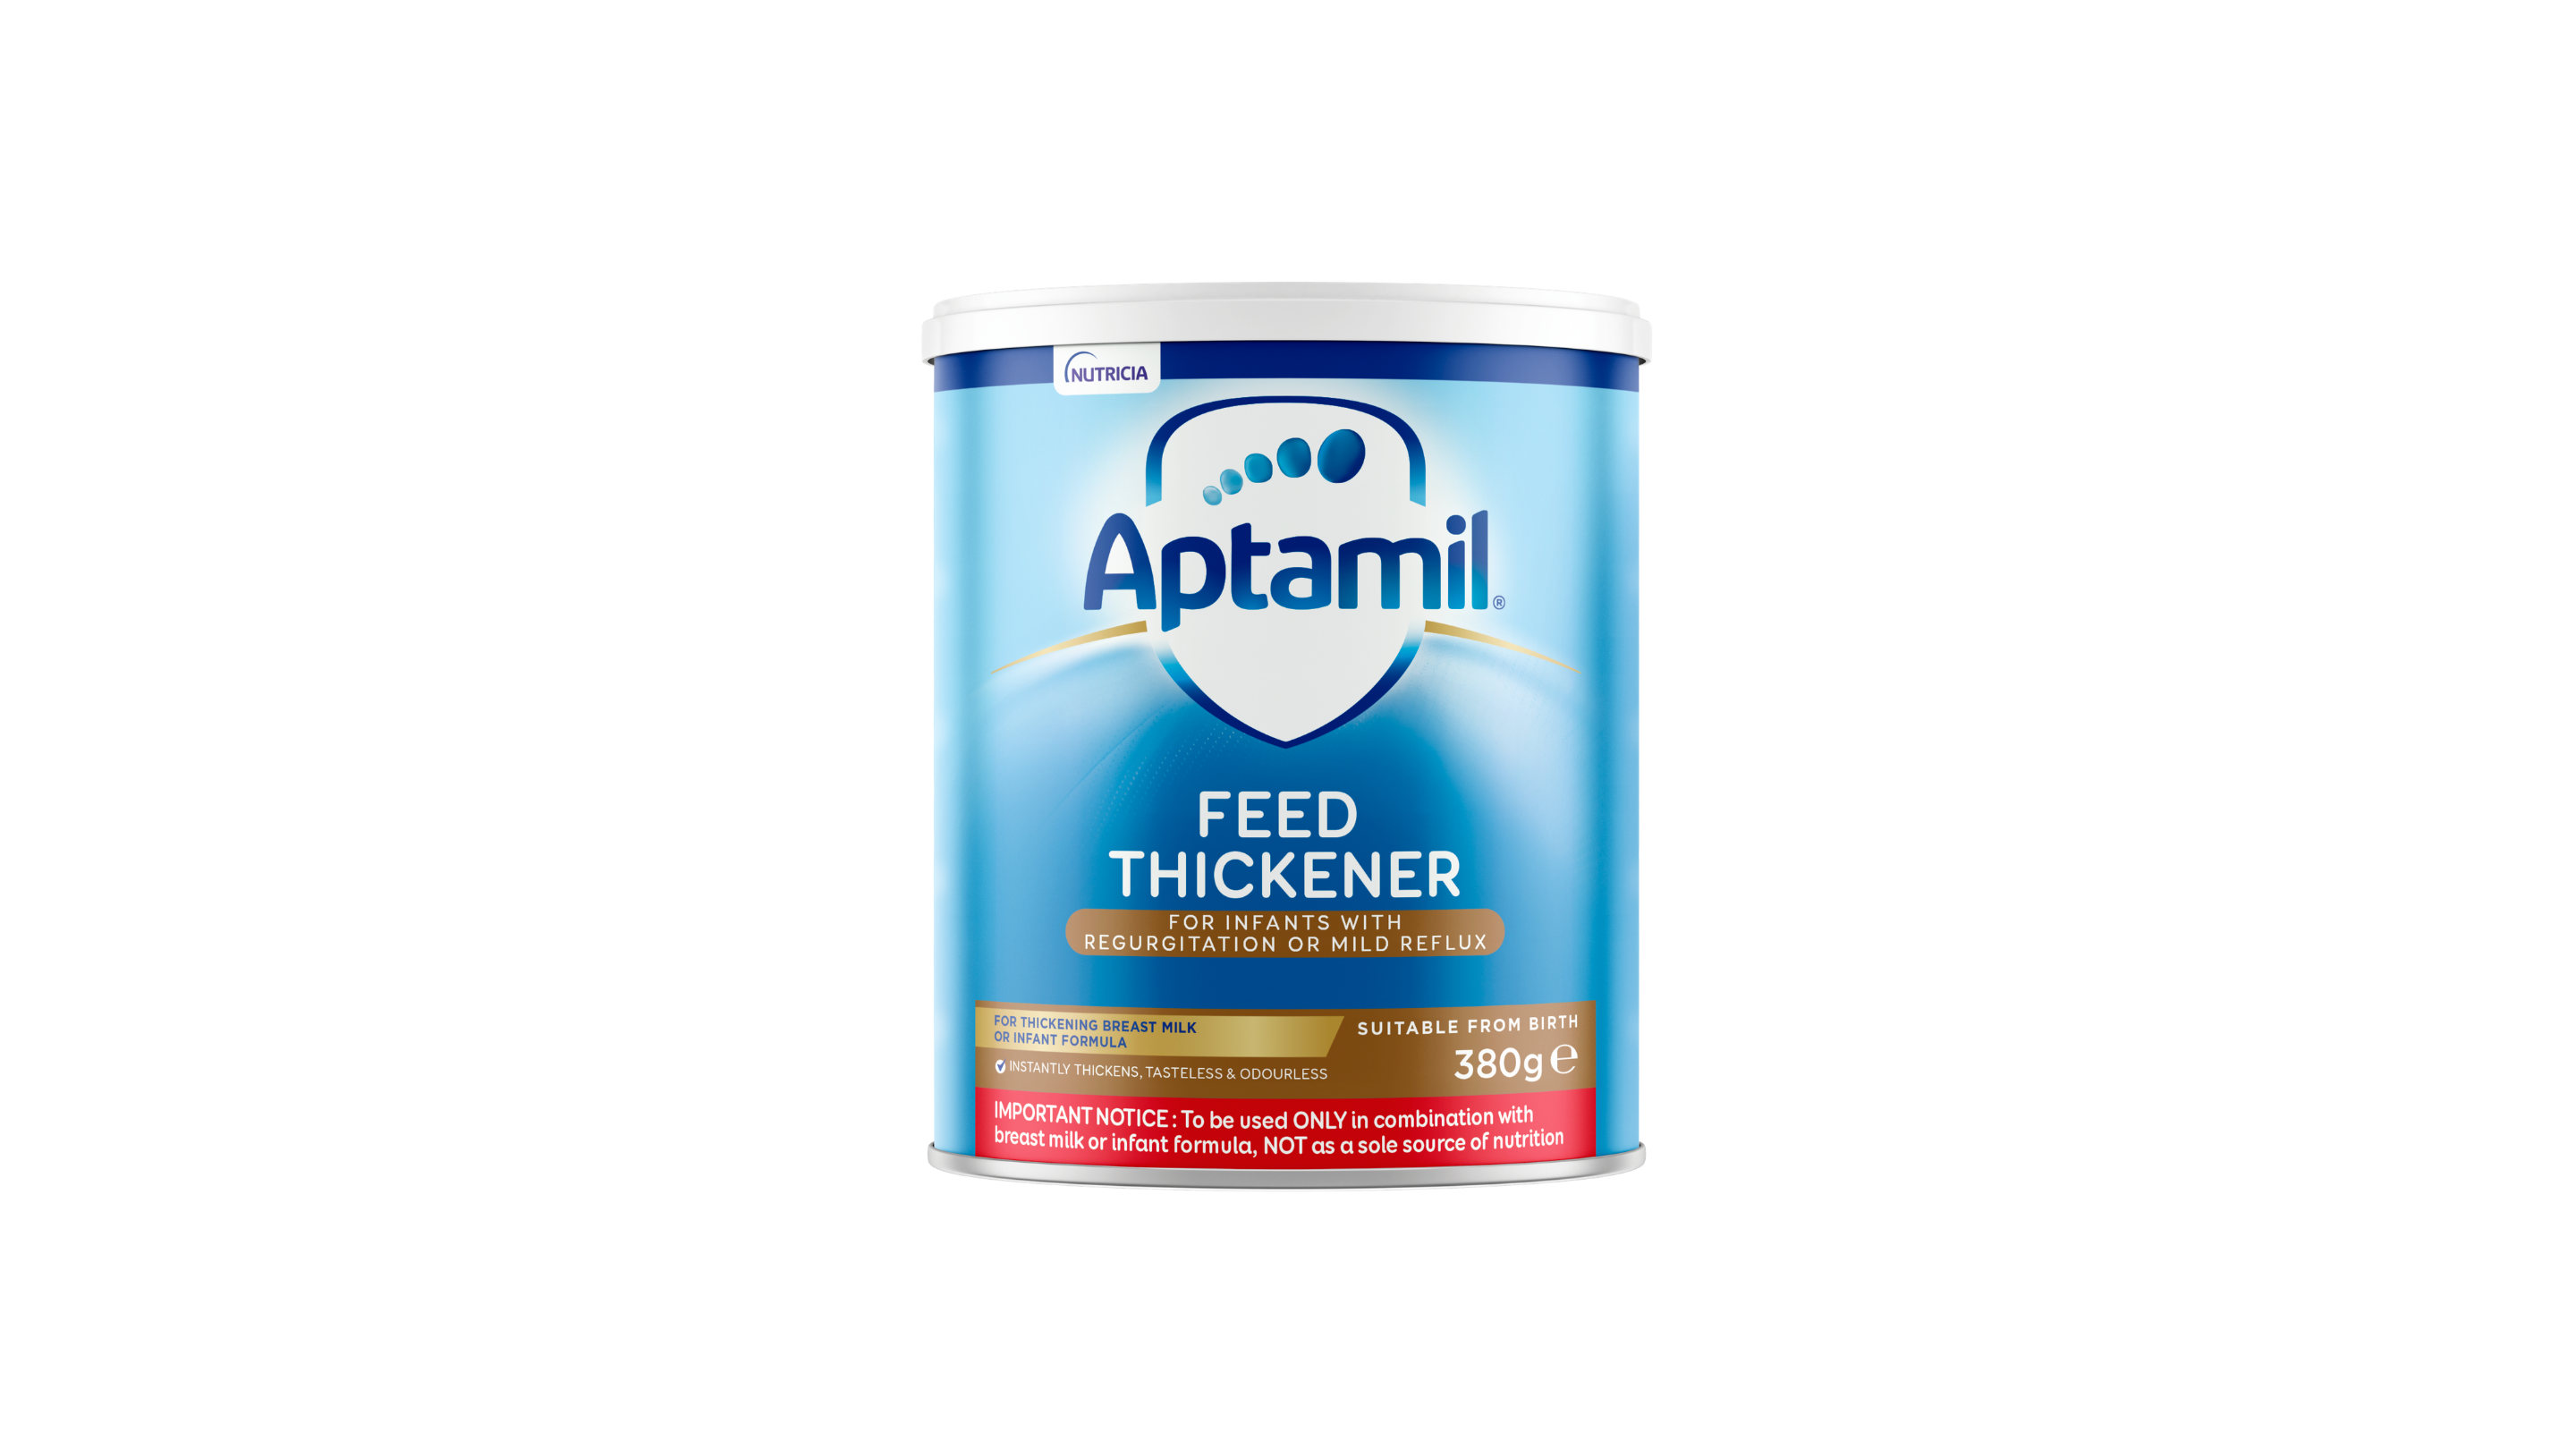 Aptamil Feed Thickener